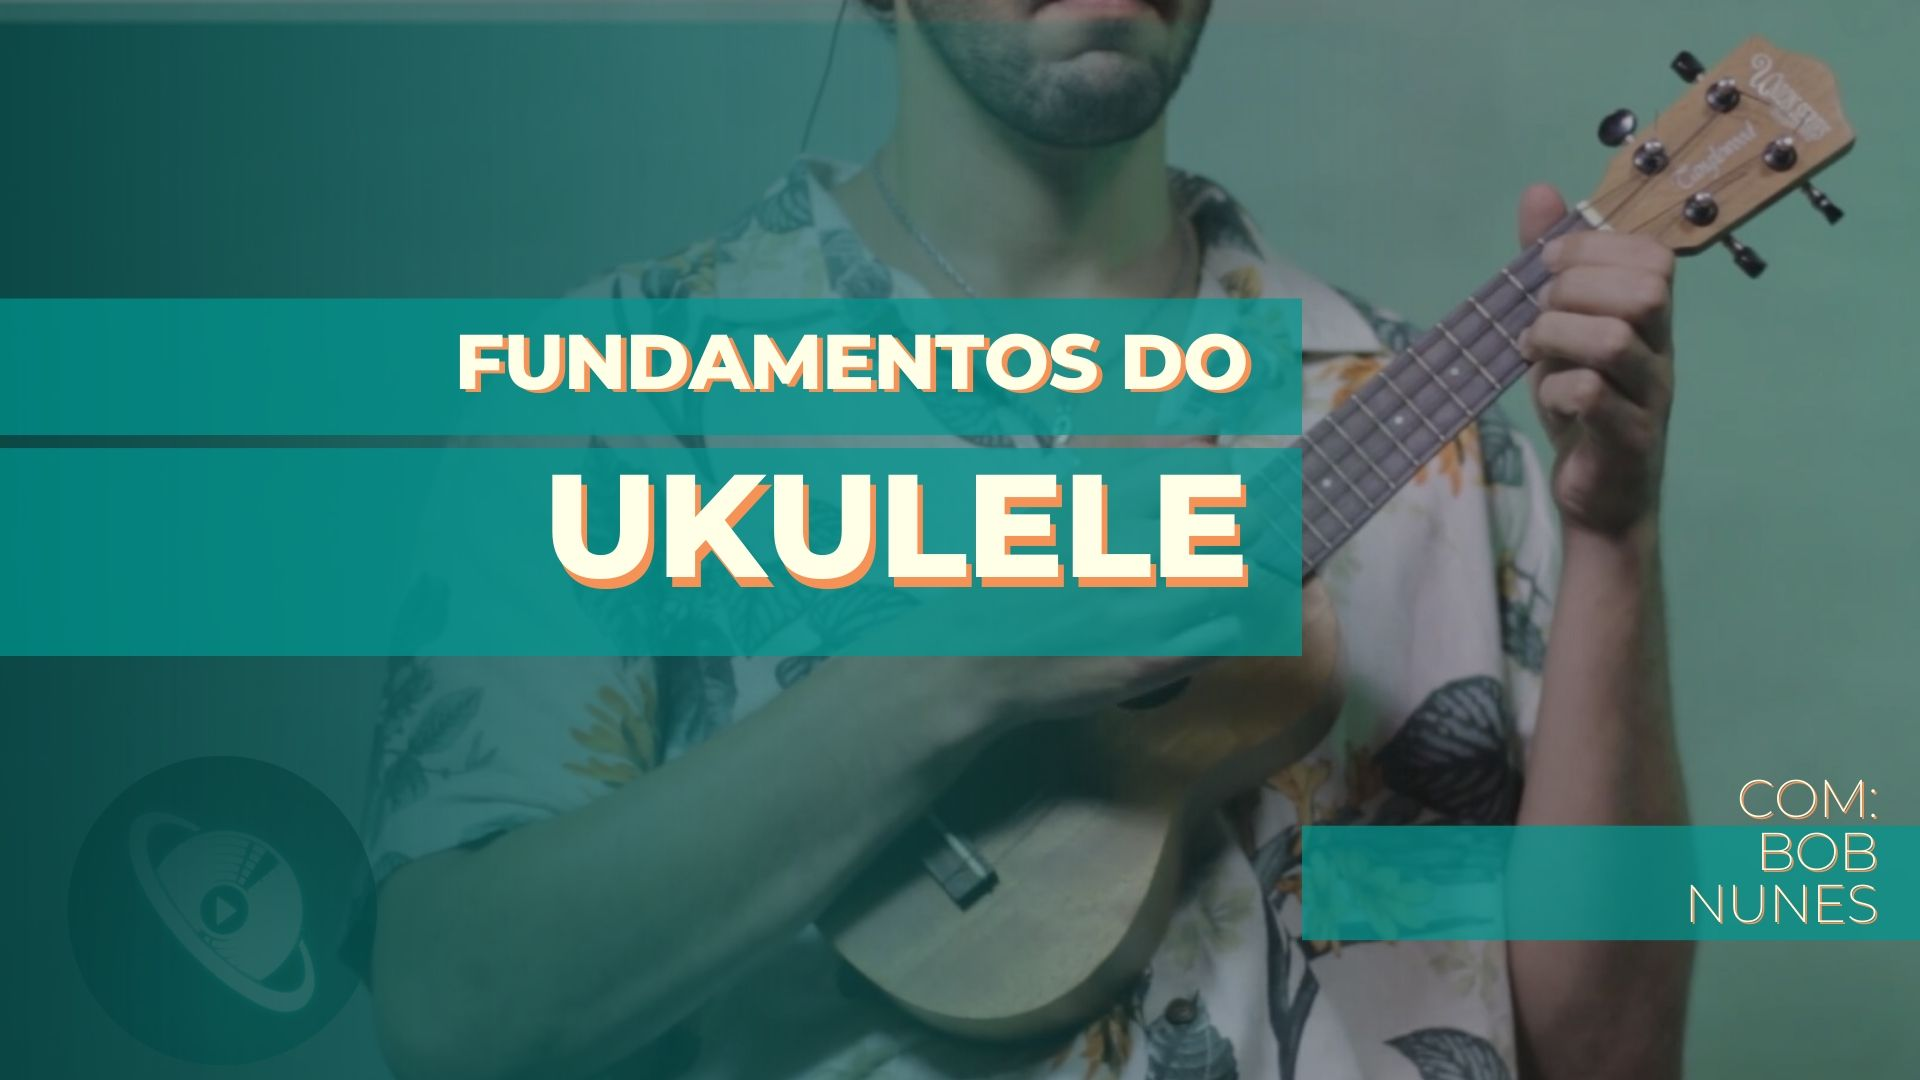 Fundamentos do Ukulele